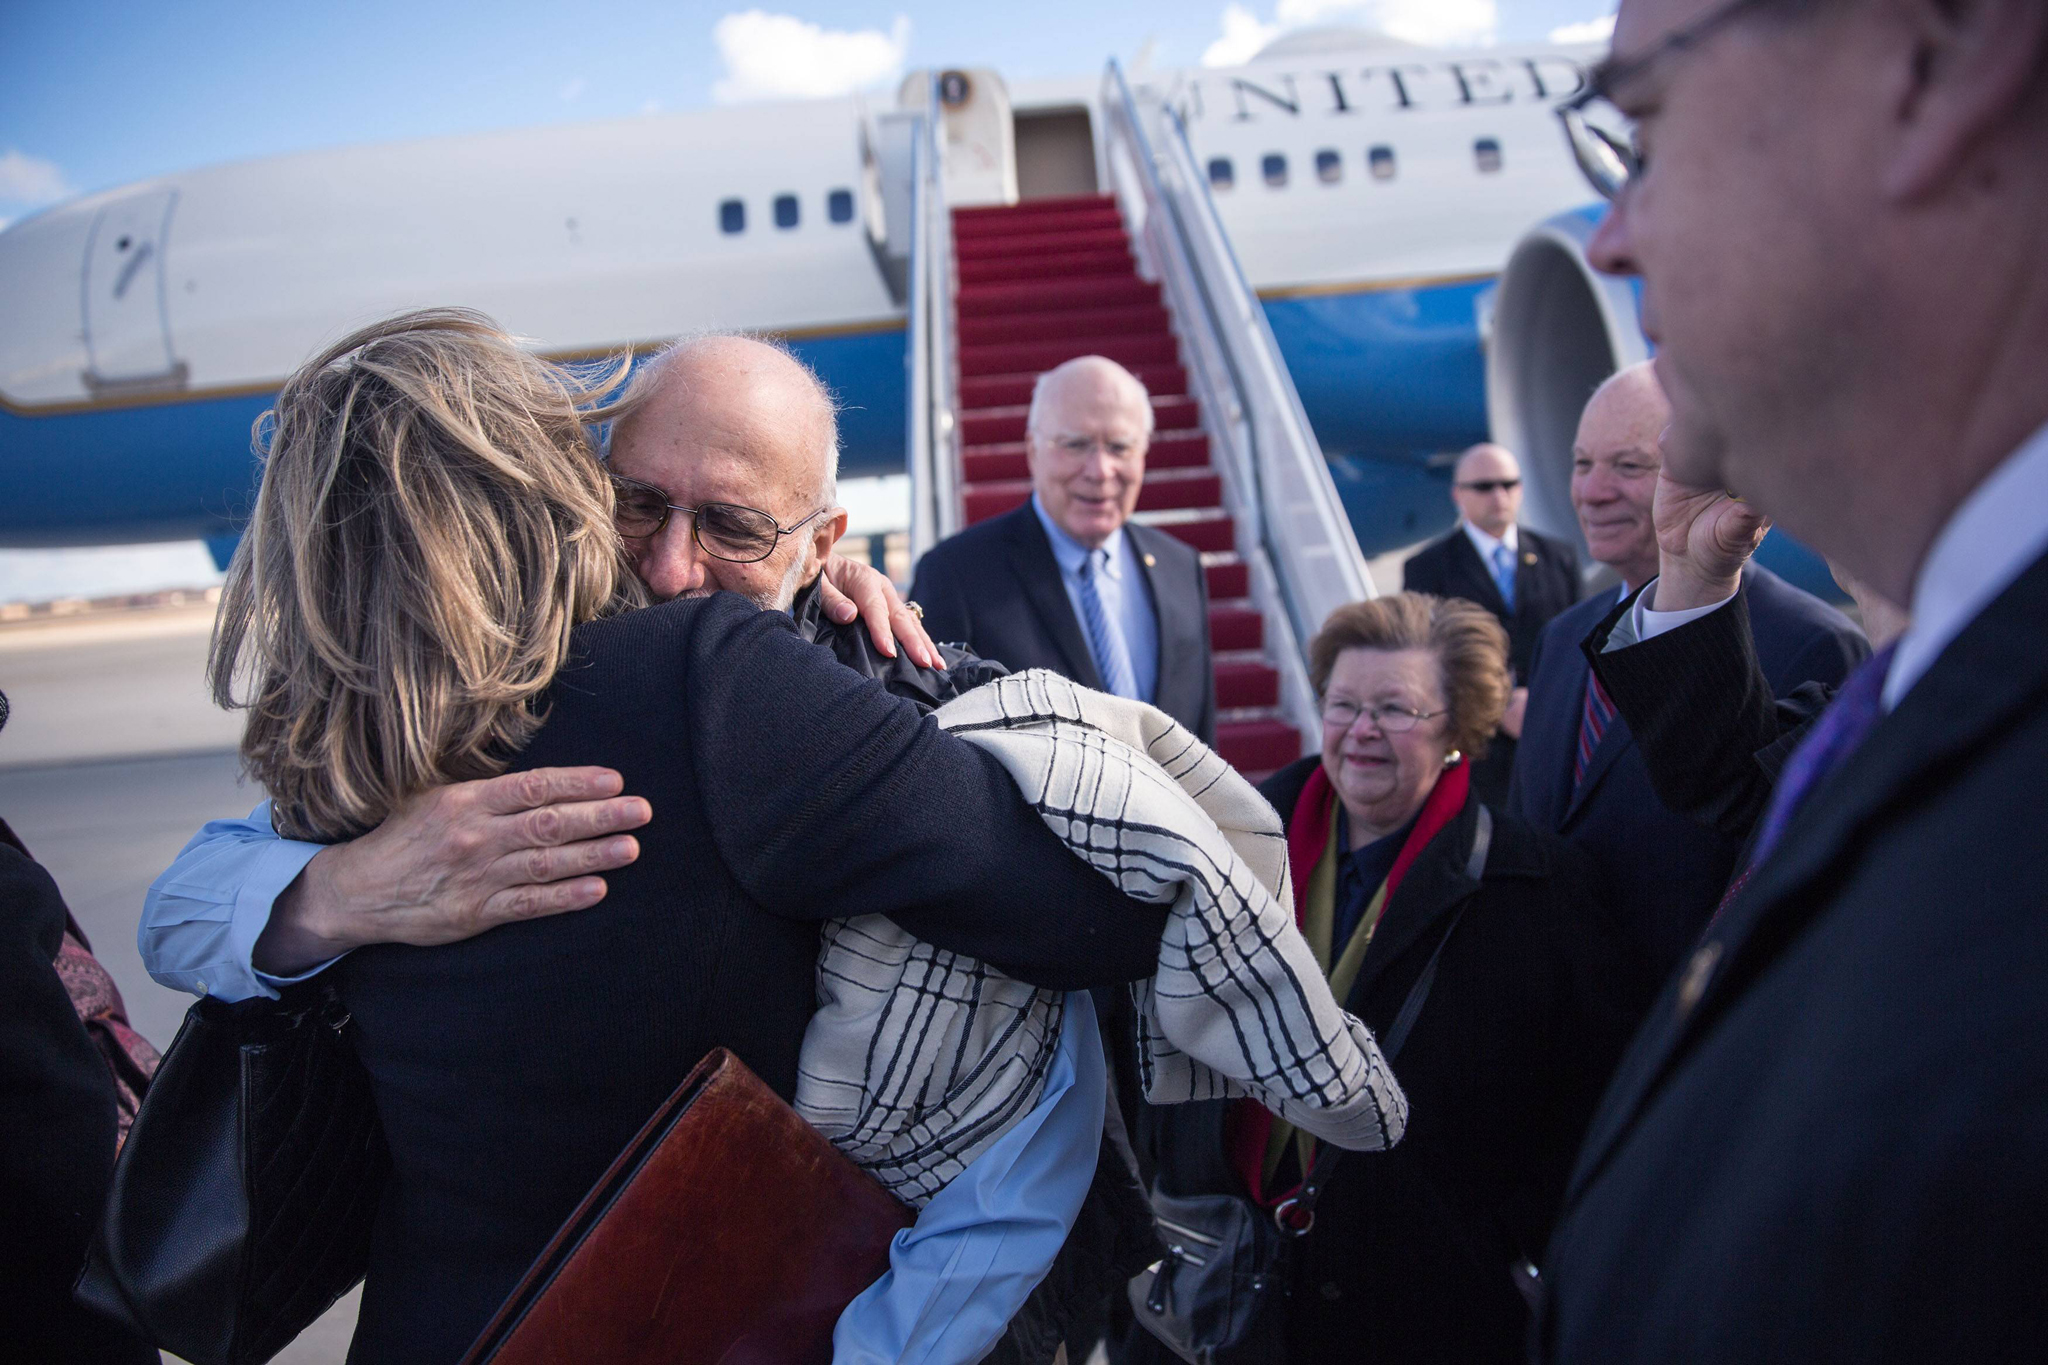 Alan Gross is greeted with hugs after arriving at Joint Base Andrews, Maryland in this White House handout photo...Alan Gross is greeted with hugs after arriving at Joint Base Andrews, Maryland in this December 17, 2014 White House handout photo. The United States and Cuba agreed on Wednesday to restore diplomatic ties that Washington severed more than 50 years ago, and President Barack Obama called for an end to the long economic embargo against its old Cold War enemy.  Gross spent 5 years as a prisoner in Cuba. REUTERS/Lawrence Jackson/White House/Handout via Reuters  (UNITED STATES - Tags: POLITICS) THIS IMAGE HAS BEEN SUPPLIED BY A THIRD PARTY. IT IS DISTRIBUTED, EXACTLY AS RECEIVED BY REUTERS, AS A SERVICE TO CLIENTS. FOR EDITORIAL USE ONLY. NOT FOR SALE FOR MARKETING OR ADVERTISING CAMPAIGNS